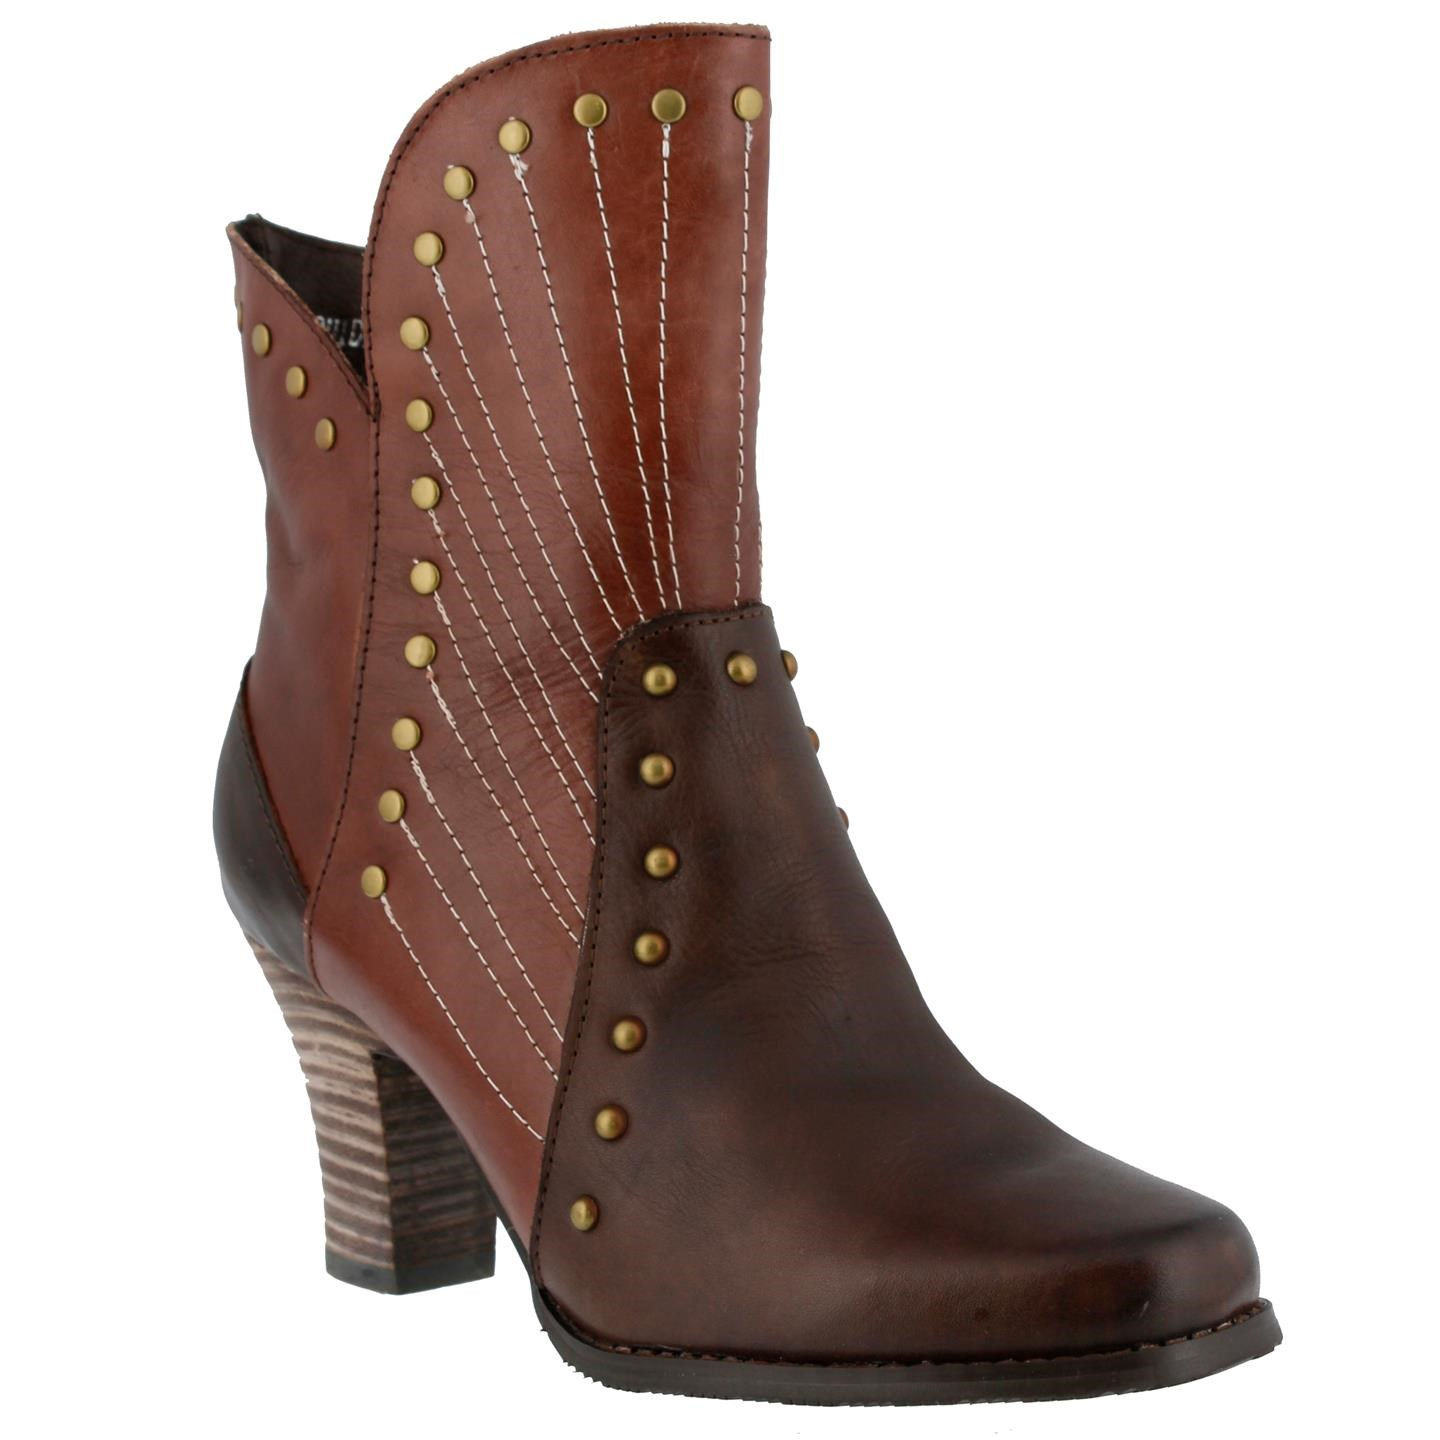 L'Artiste Quiddity By Spring Step Brown Leather Boots 37 ...